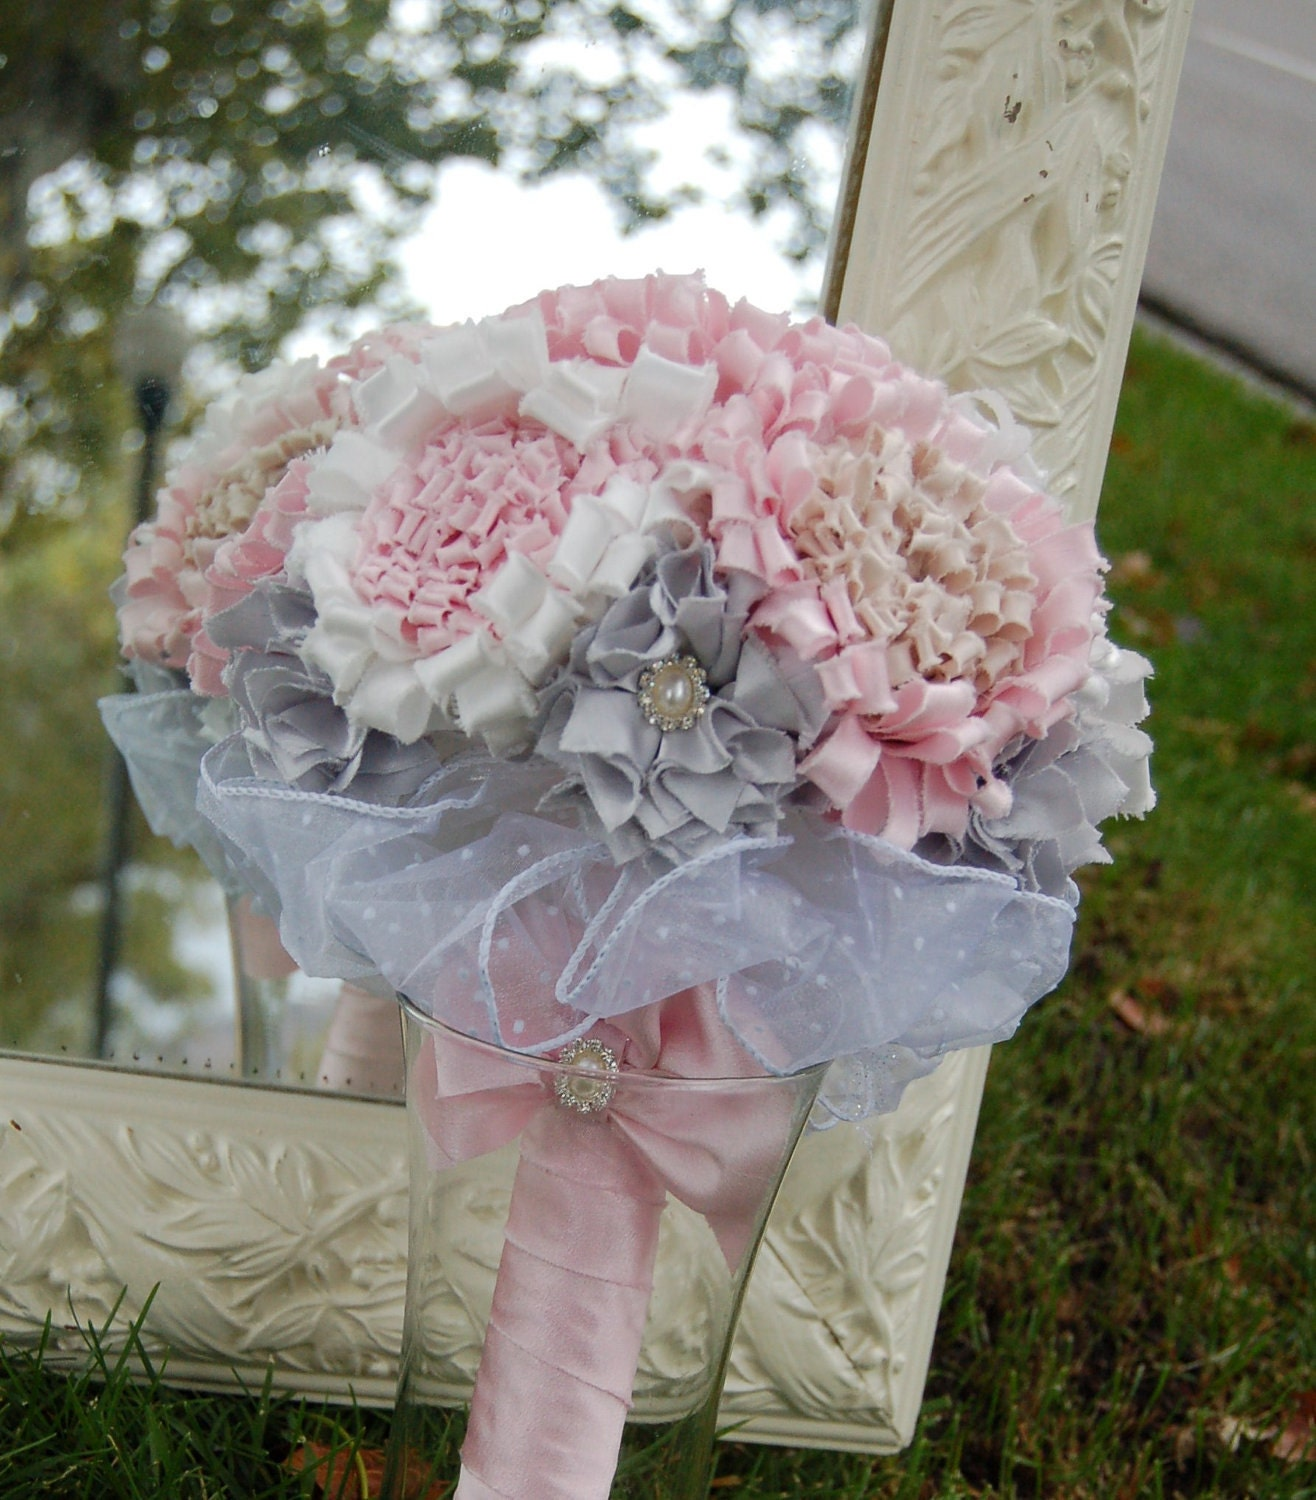 How To Make Fabric Wedding Bouquets: Fabric flower bouquet ideas ...